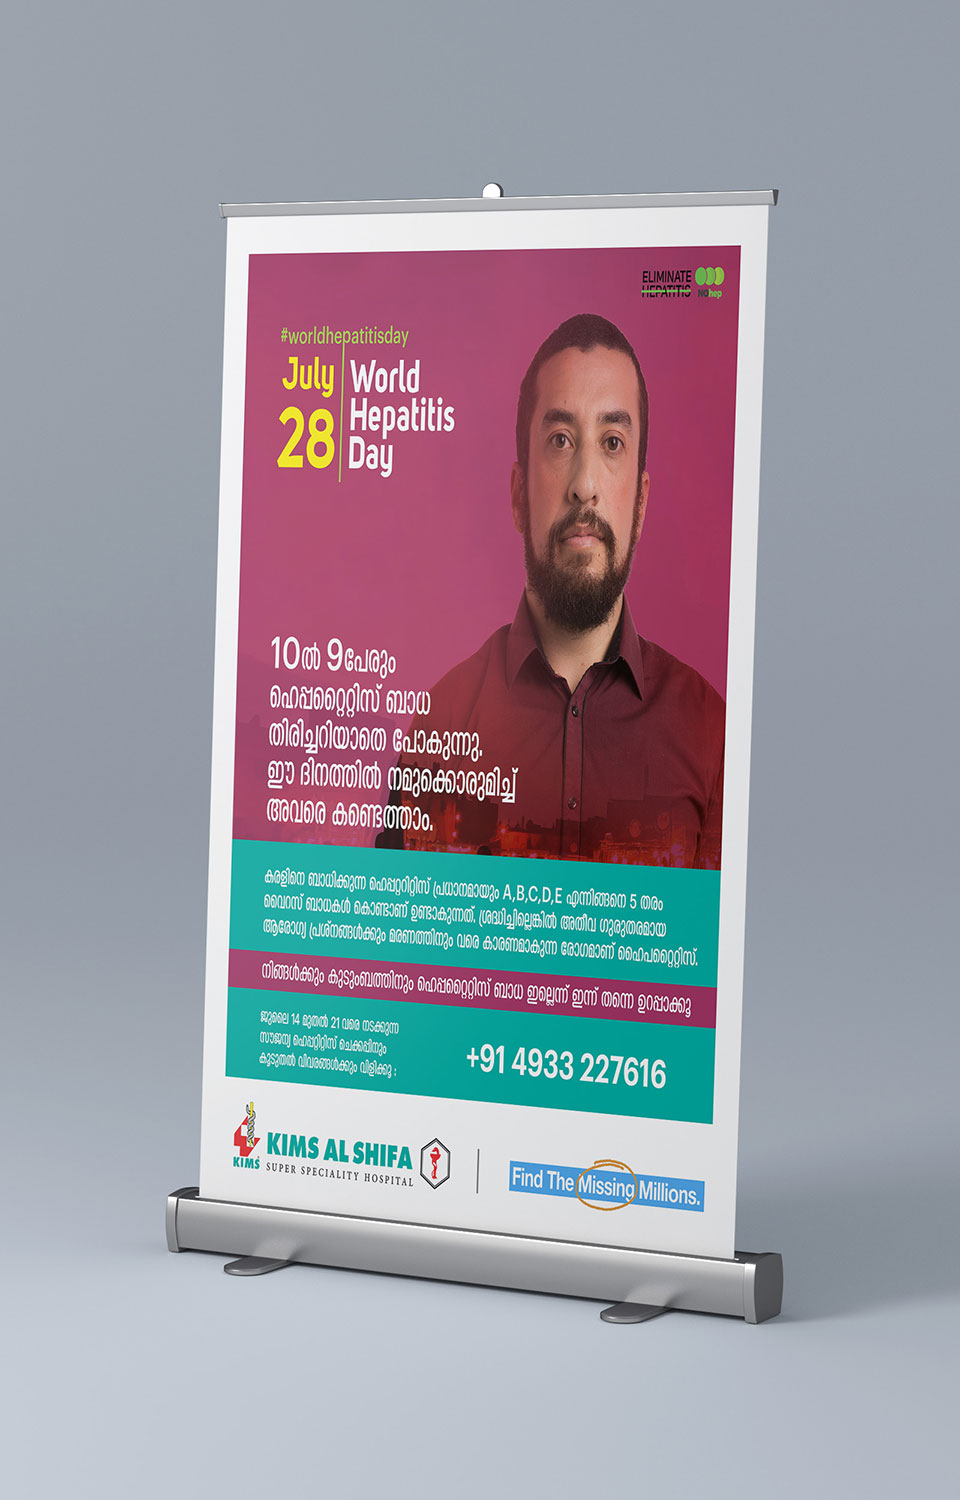 A roll-up advertisment display of KIMS Al Shifa - Hepatitis Day Campaign